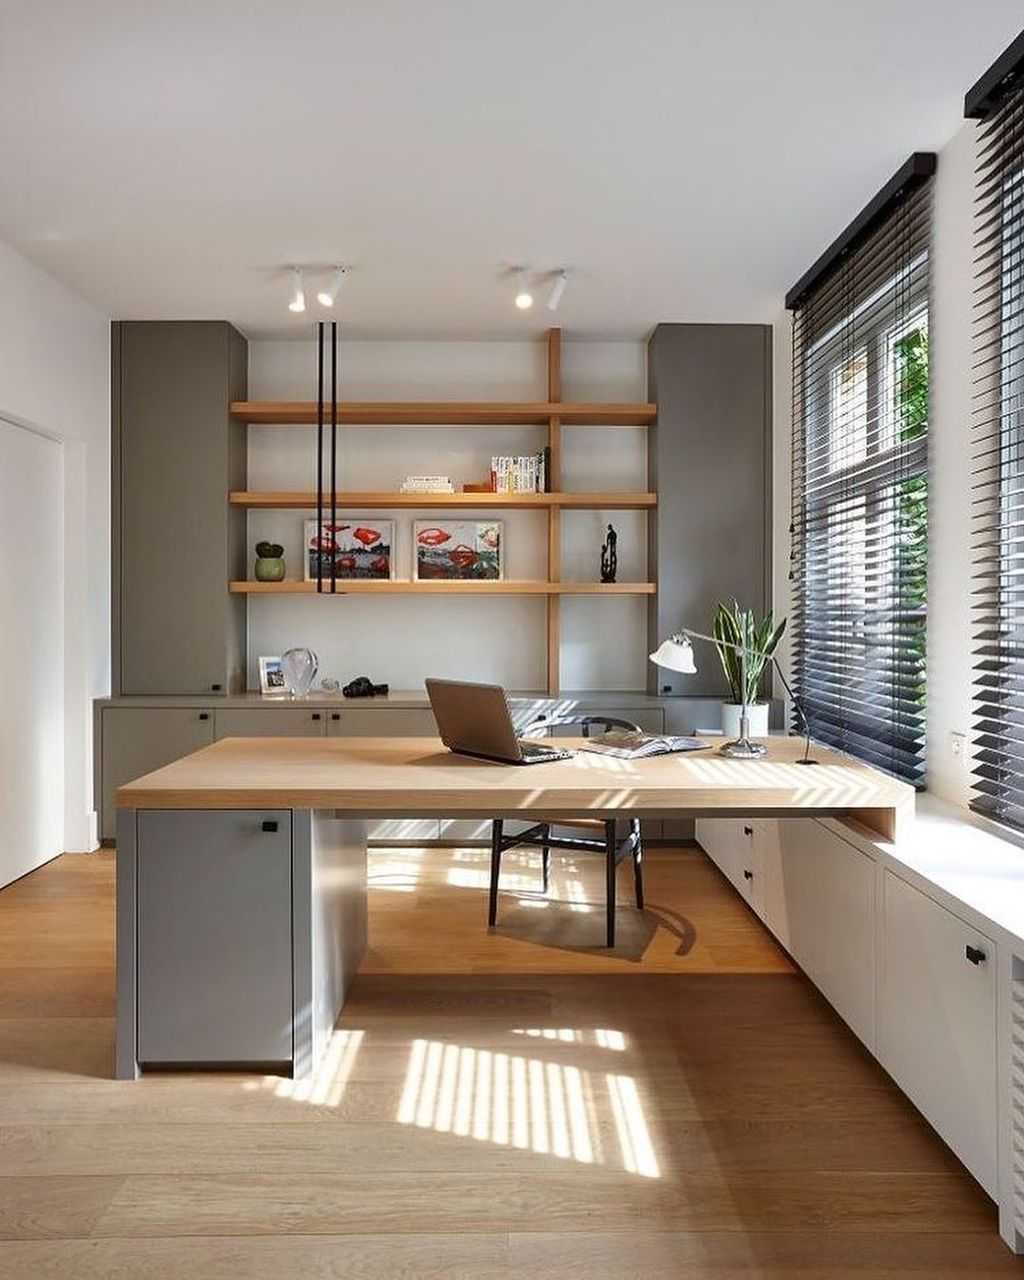 30 Admirable Modern Home Office Design Ideas That You Like Admirable Design Home Ideas Office Cabin Design Small Home Offices Modern Office Decor